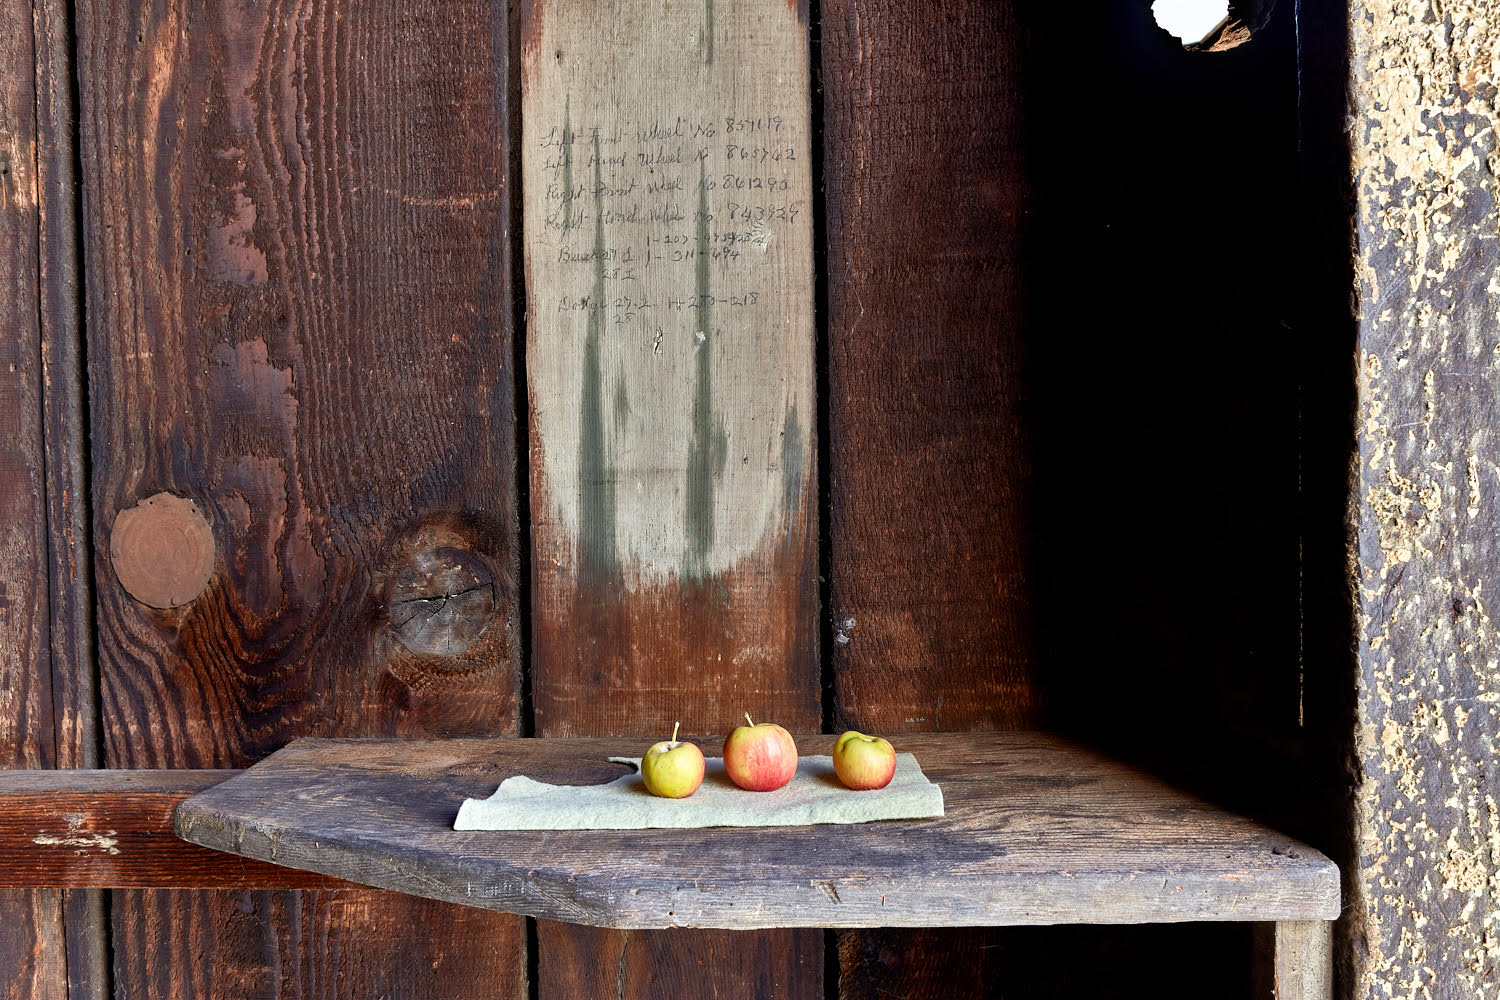 Name Of Piece: Still life with apples  Size of piece: variable  Medium: Apples and felt  Photographed by:  Veli -Matti Hoikka  Location, Year: Reserve Ames, Los Angeles, CA, 2017